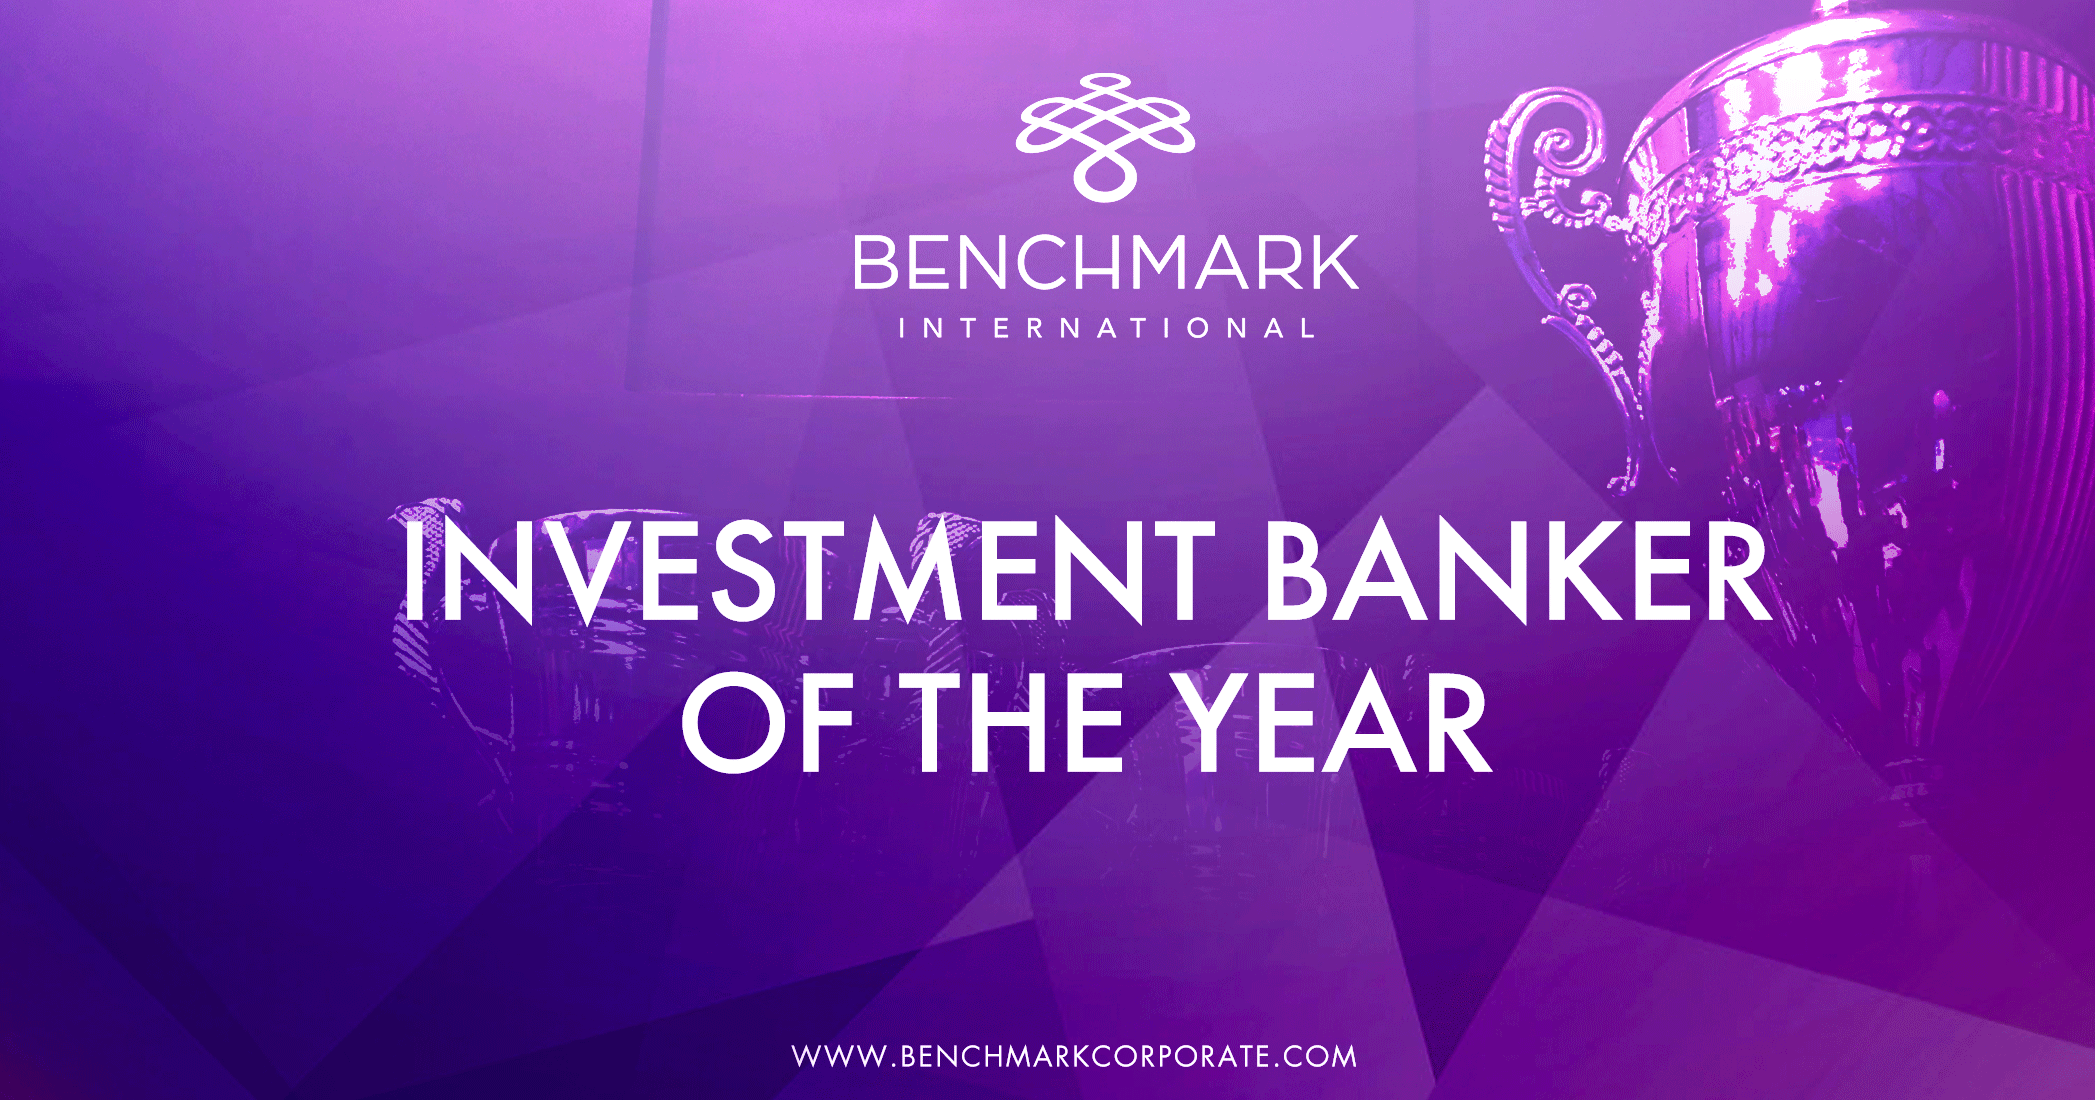 Investment Banker of the Year Winner!